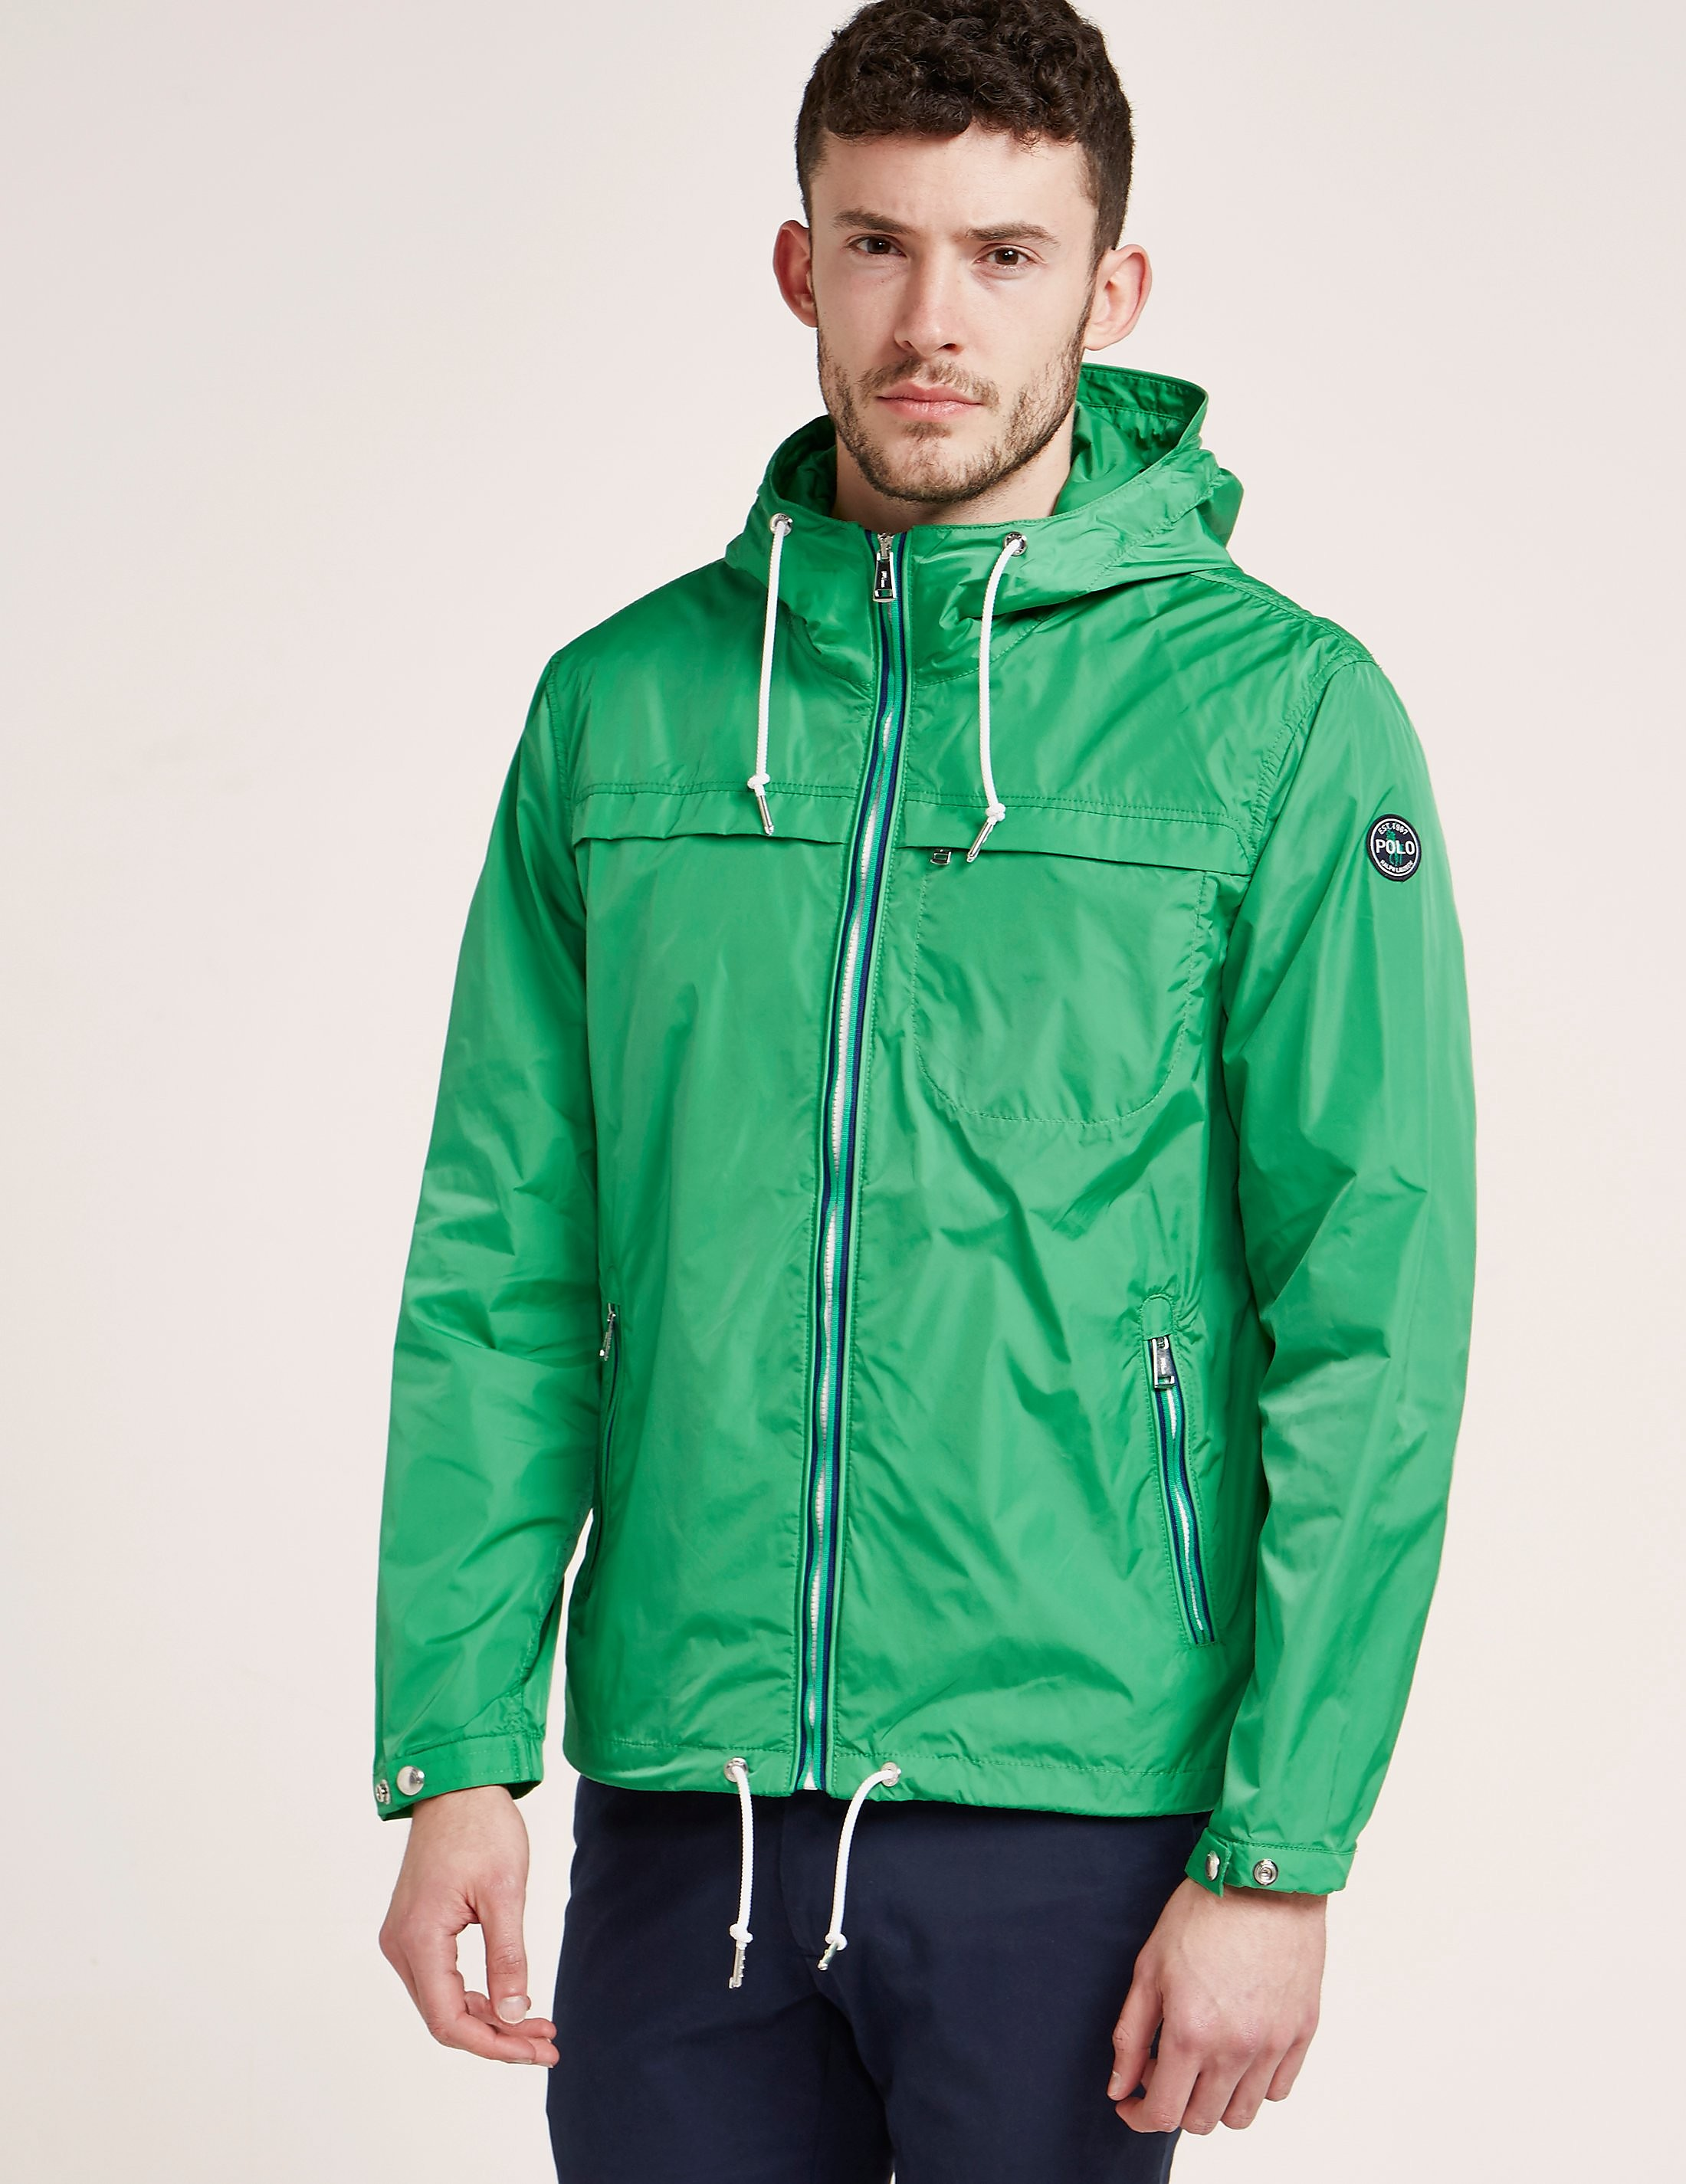 Polo Ralph Lauren Packable Jacket